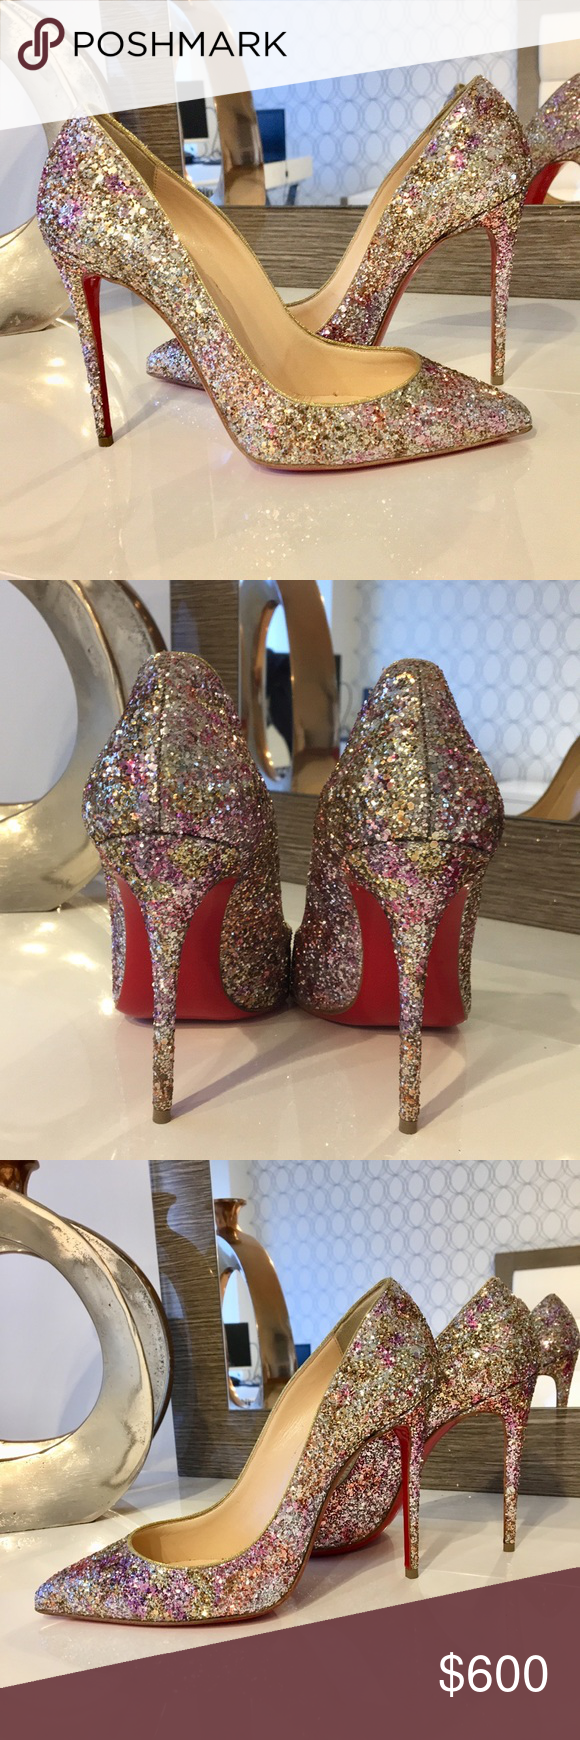 56b0c1aafce Authentic Christian Louboutin Glitter Heels Selling Christian Louboutin 100  mm Heels. Beautiful glitter throughout the